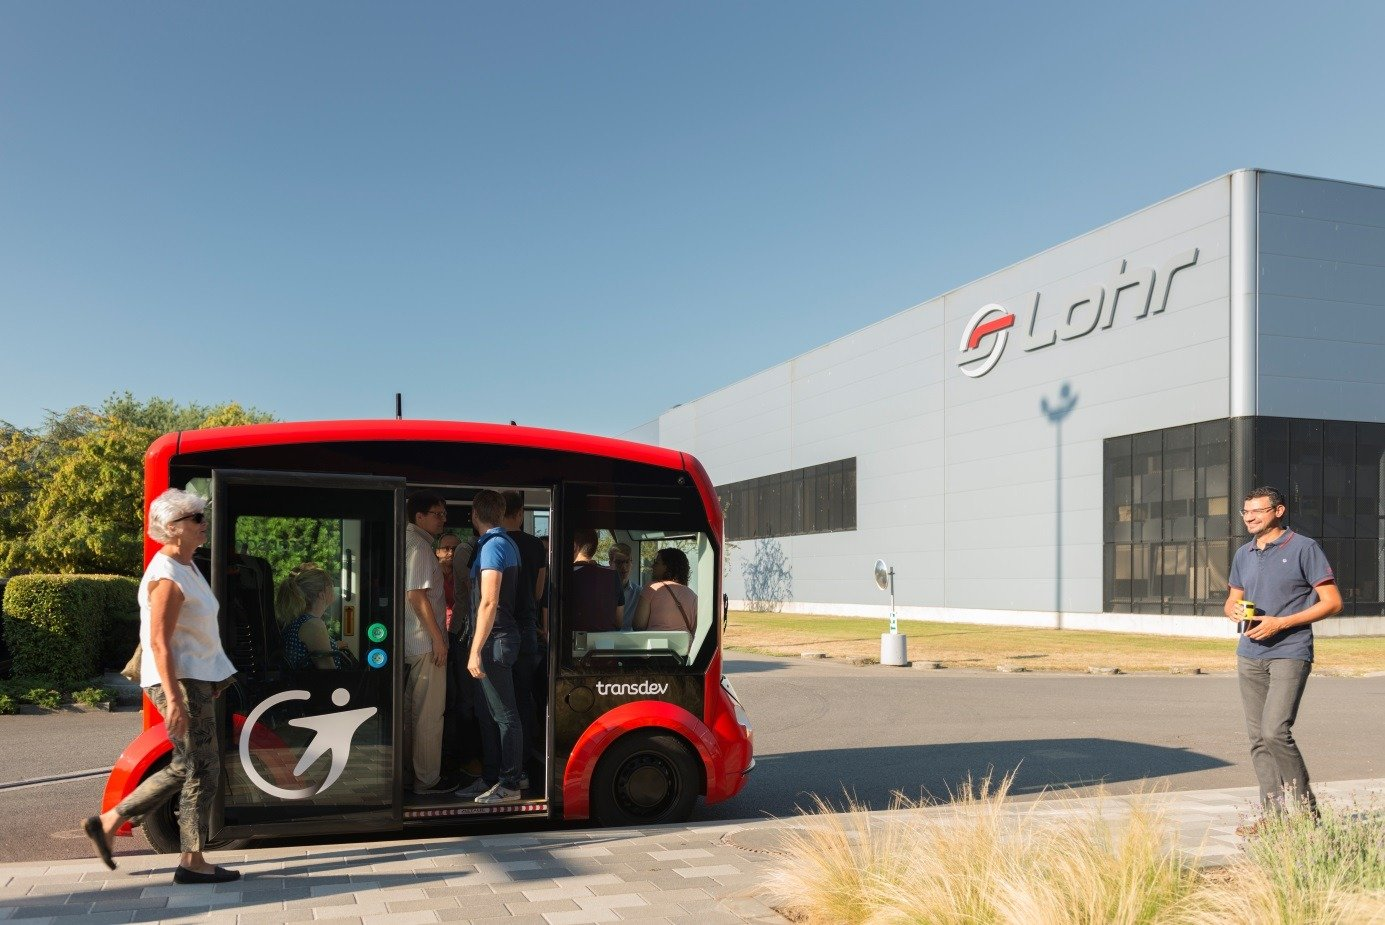 transdev presents at ces 2019  las vegas  its vision of shared autonomous transport to offer its